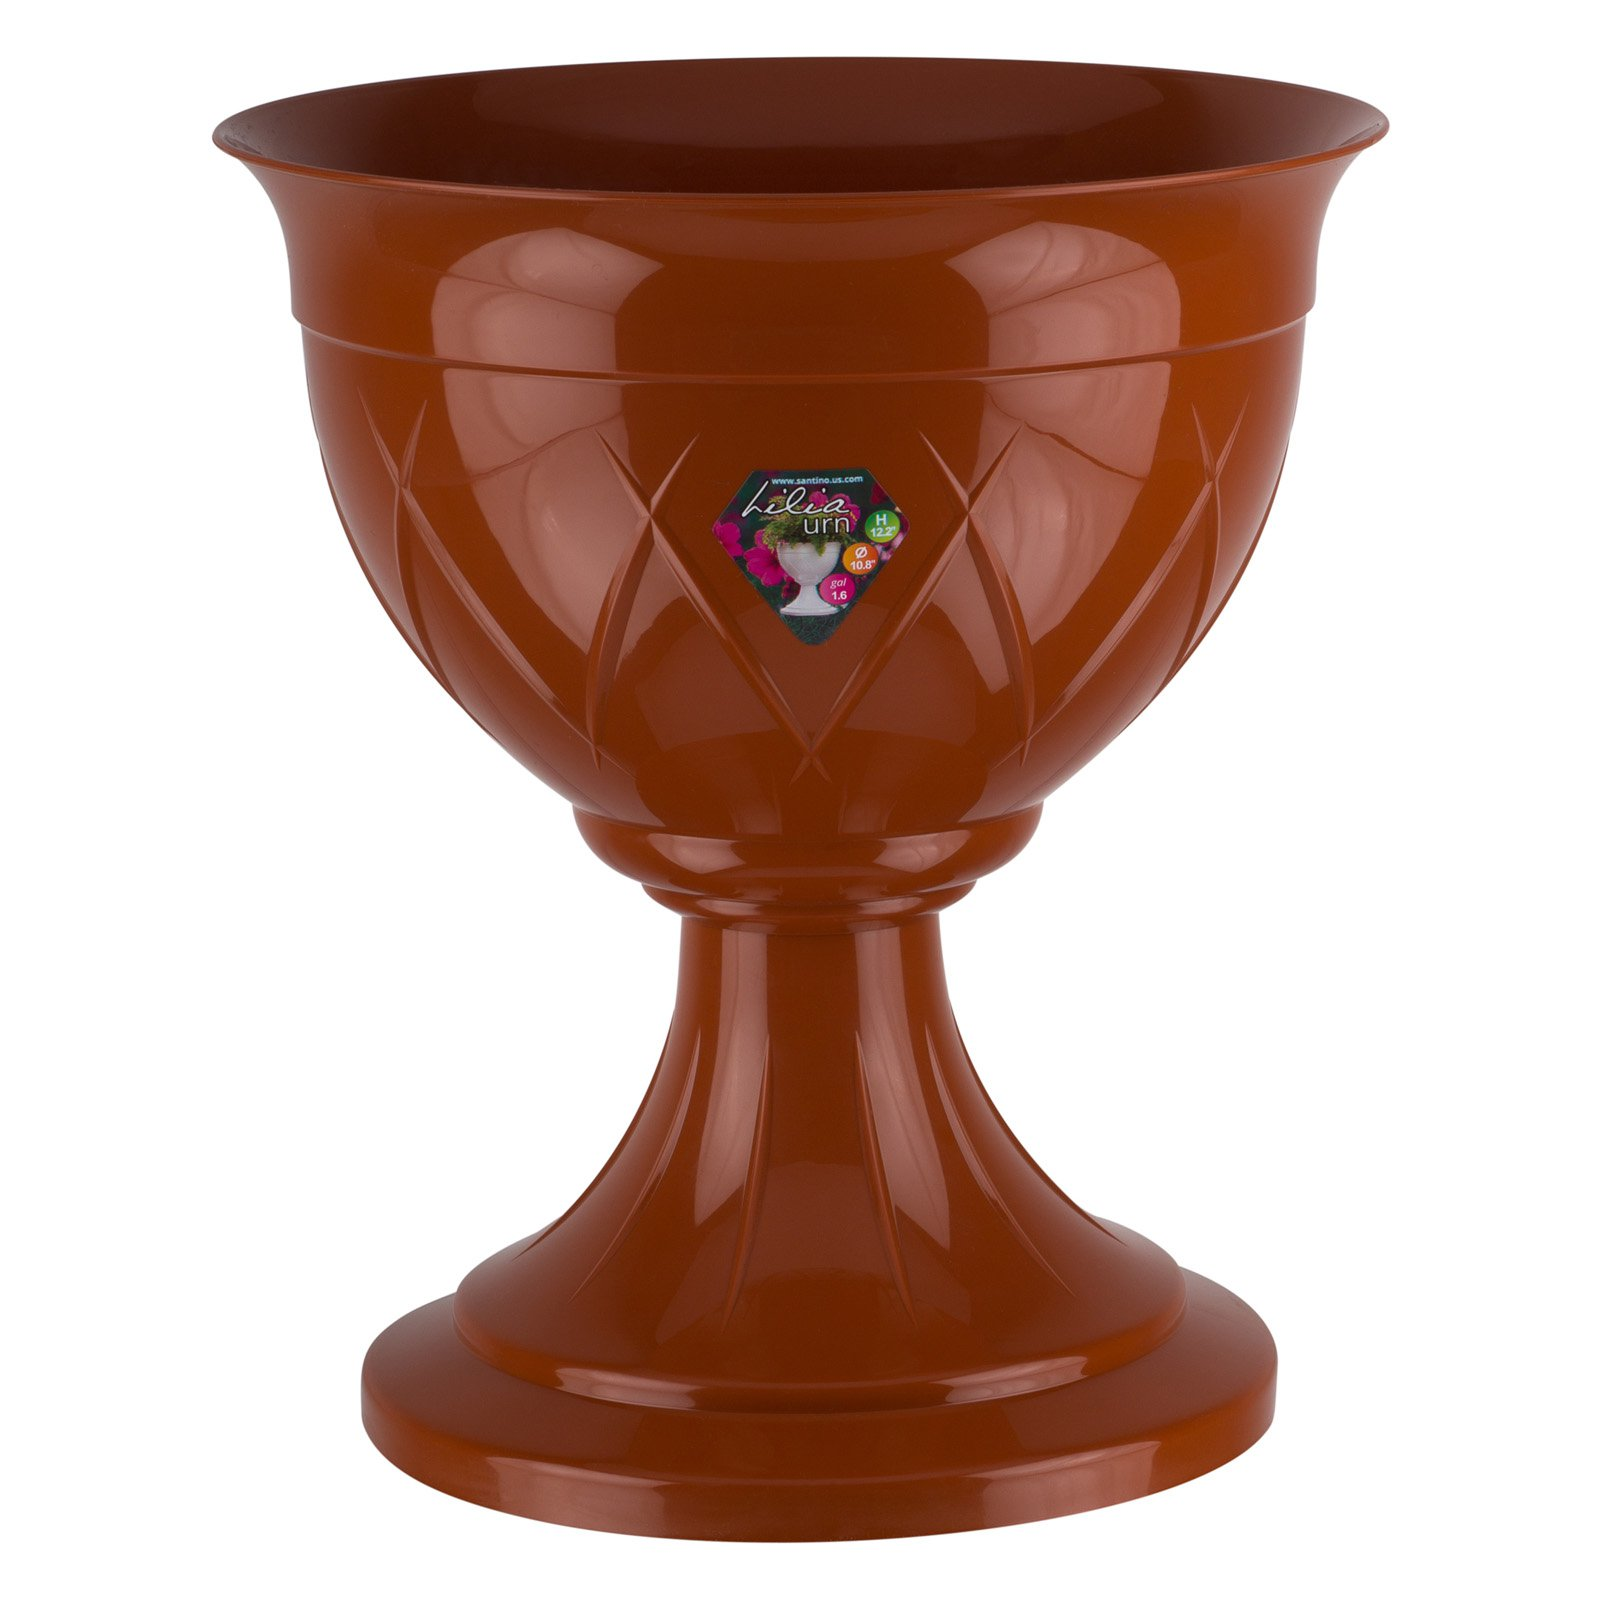 Flower Pot Urn LILIA 12.8 Inch, Terracotta Color by Santino